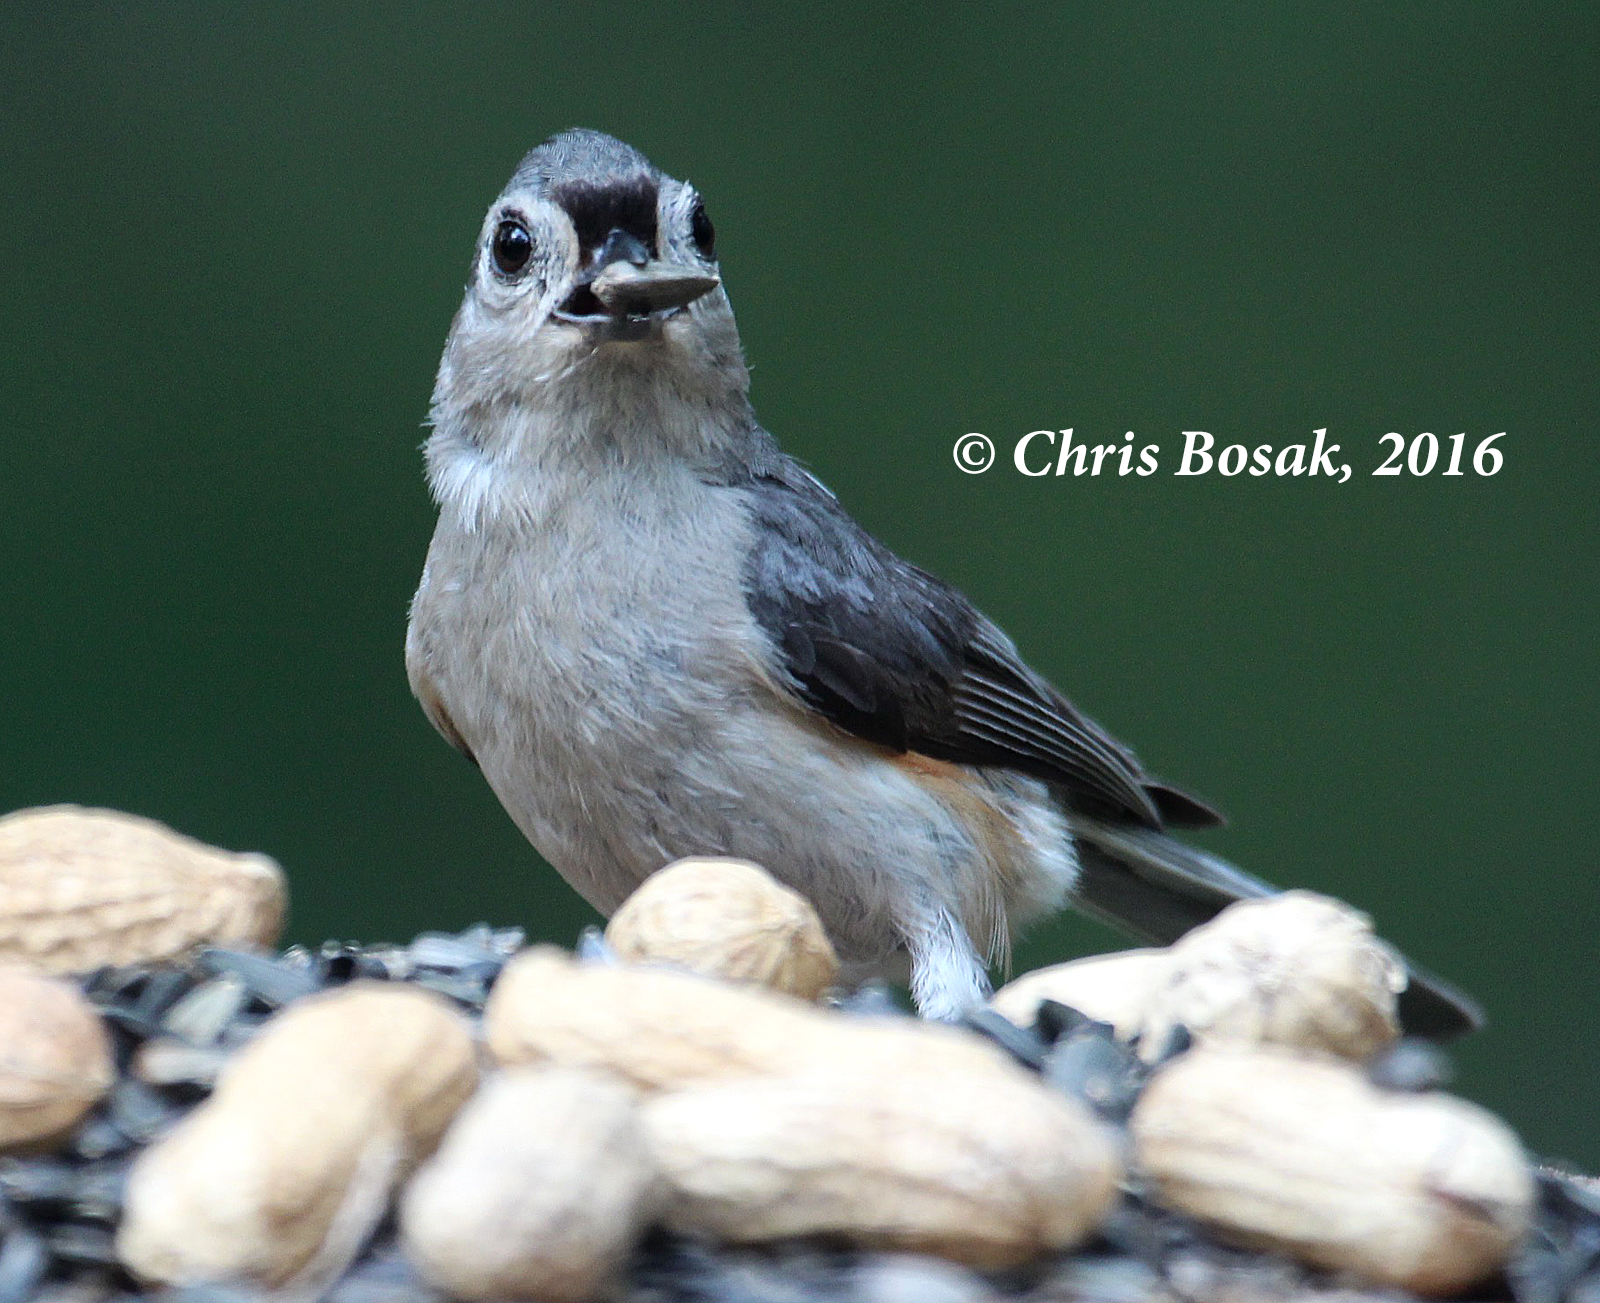 Photo by Chris Bosak A Tufted Titmouse grabs a sunflower seed from a feeder in Danbury, Conn., summer 2016.